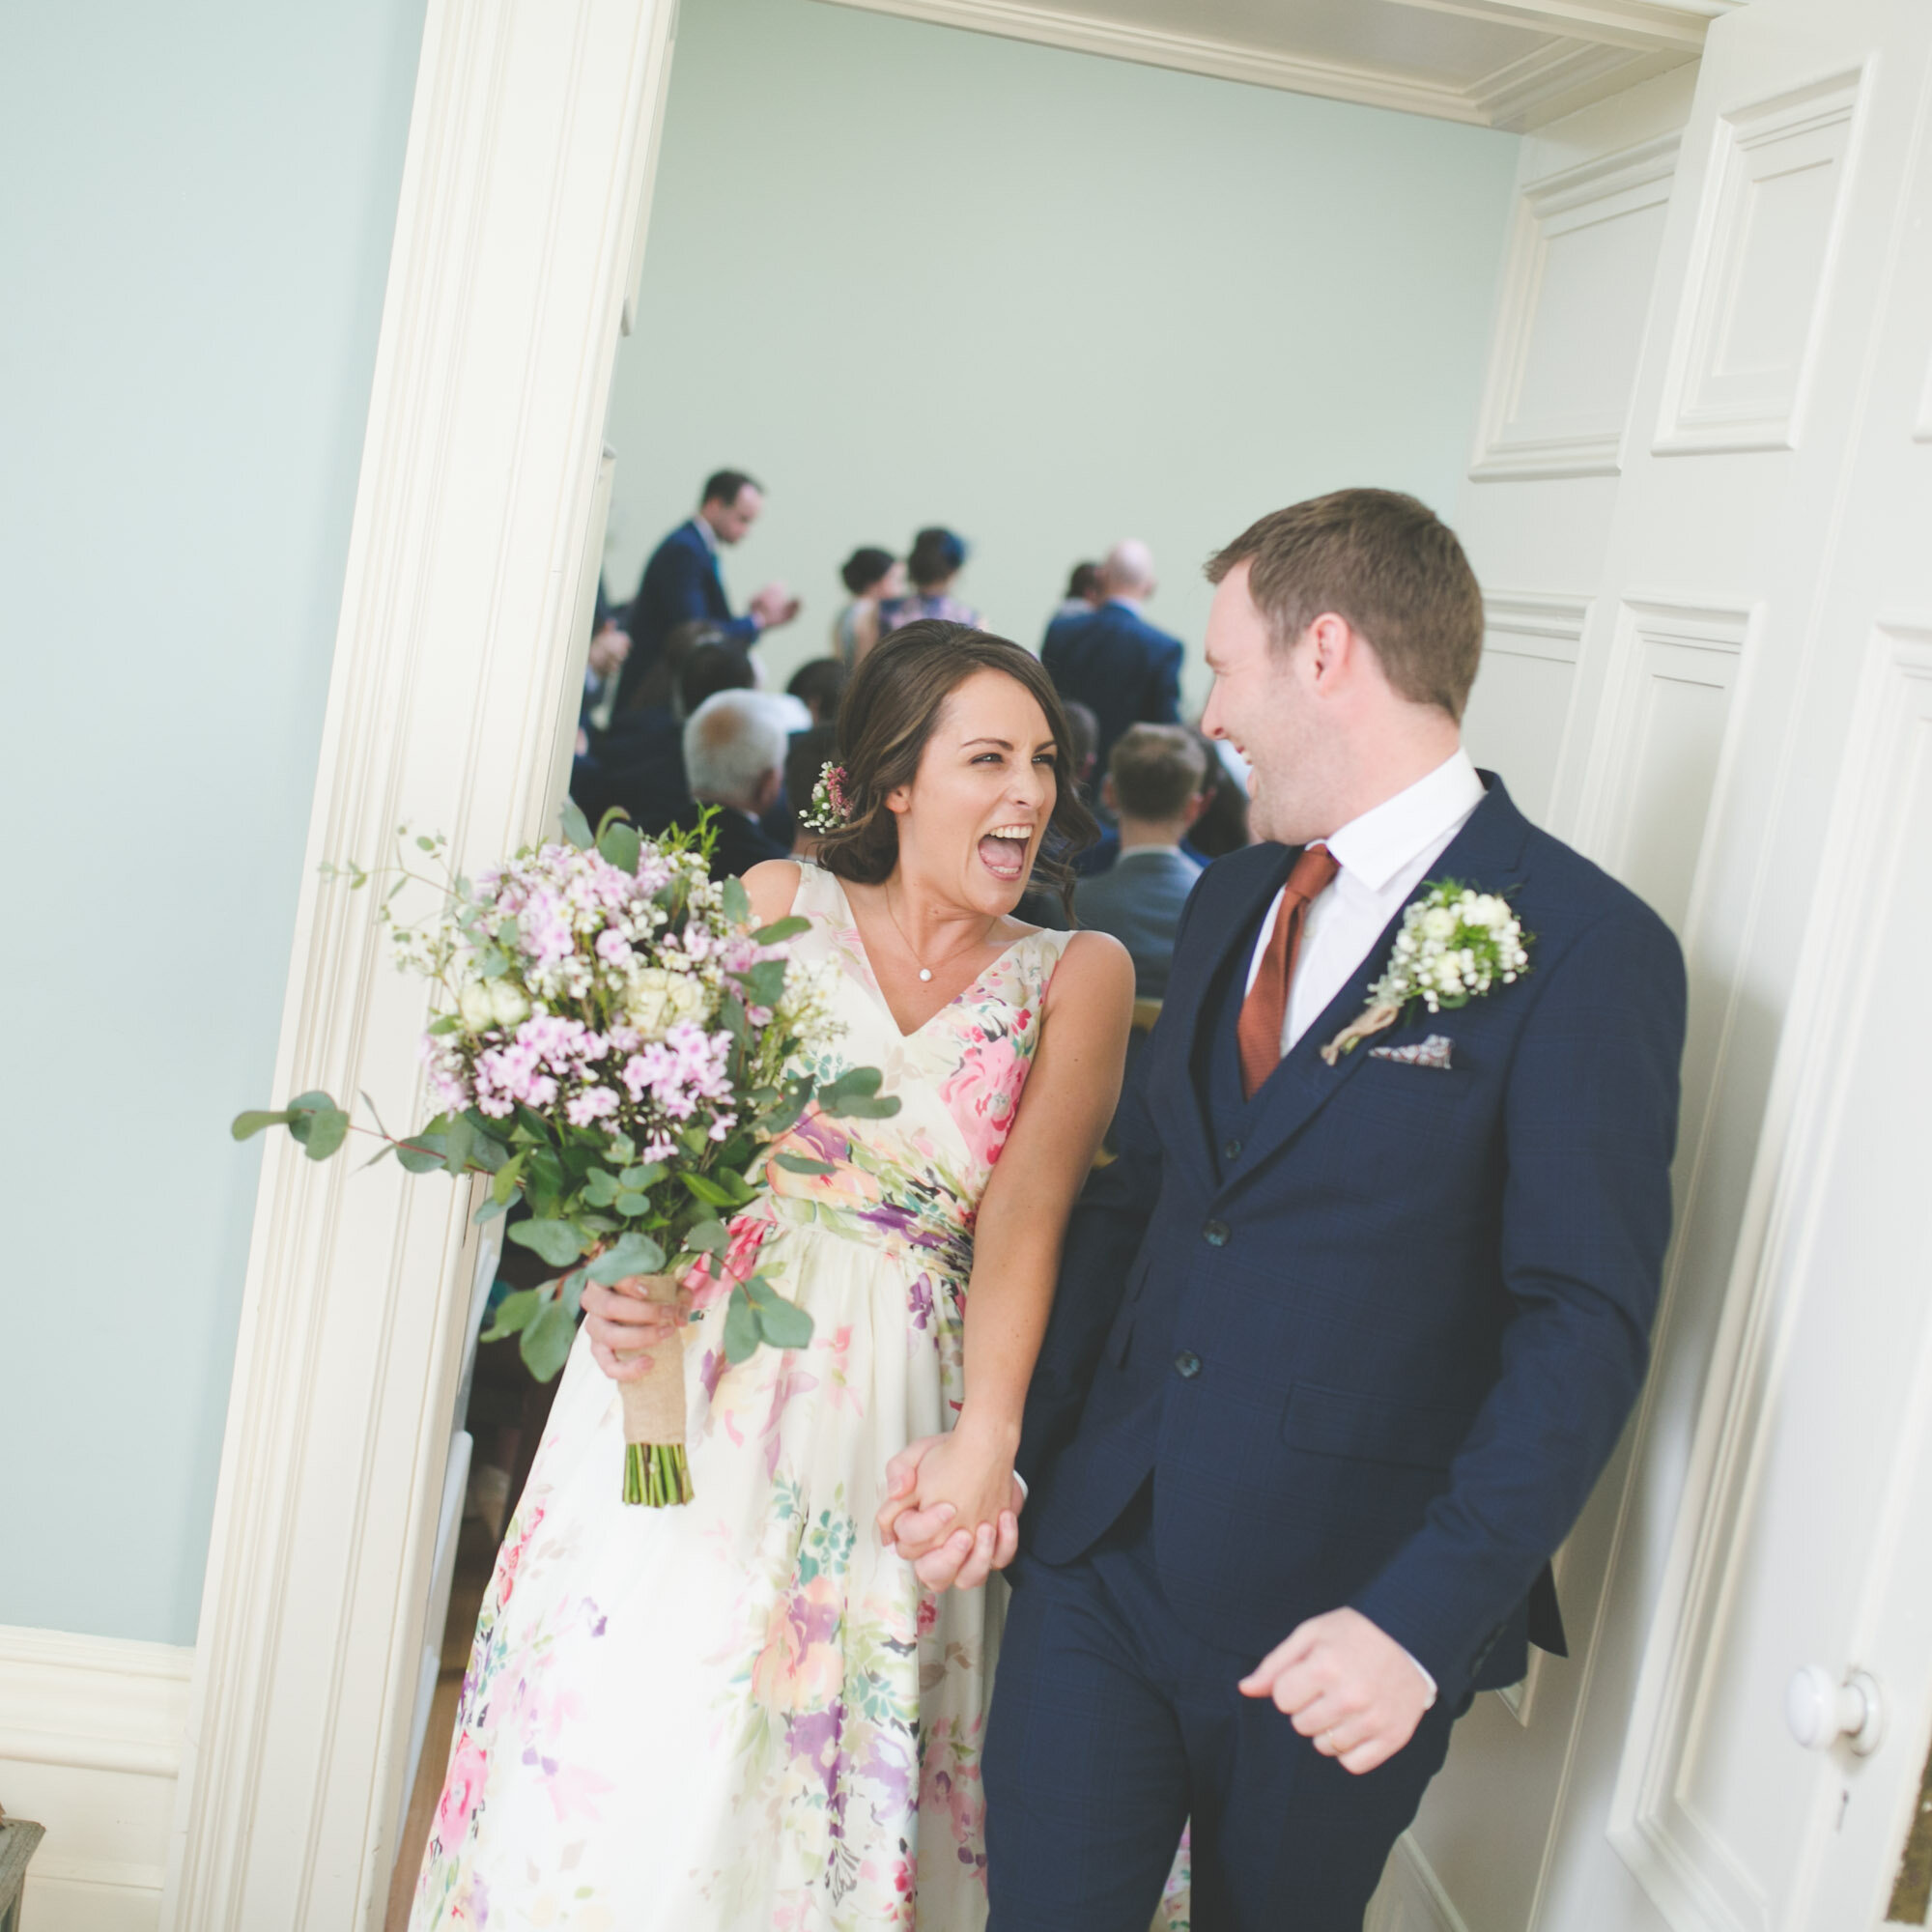 Temple House Wedding. Co. Sligo. Floral Bouquet.